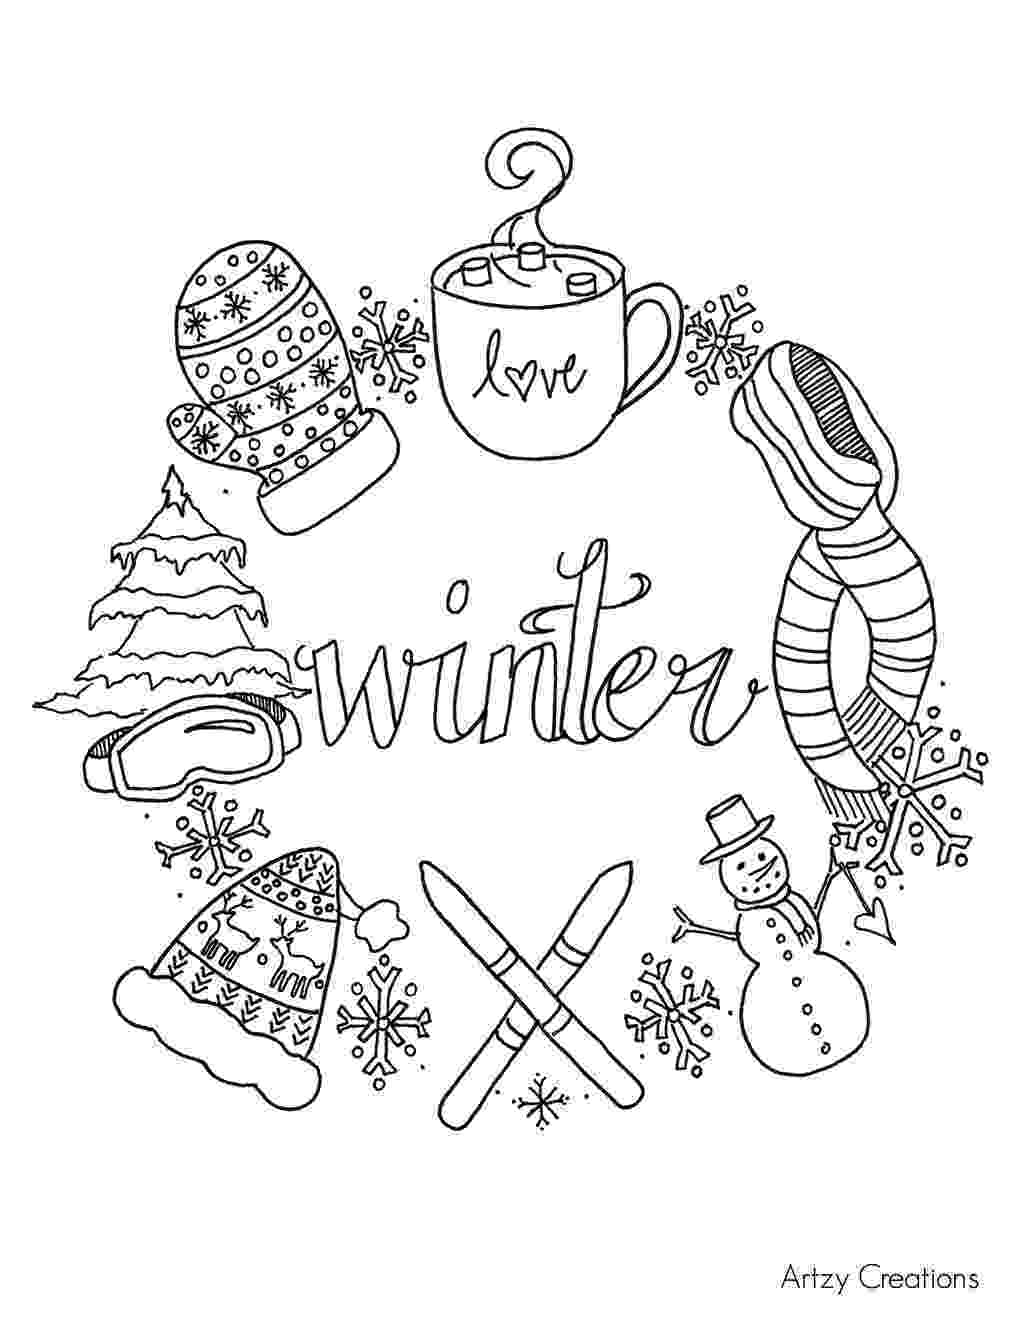 winter printable coloring pages free kids printable images gallery category page 5 printableecom free coloring winter printable pages